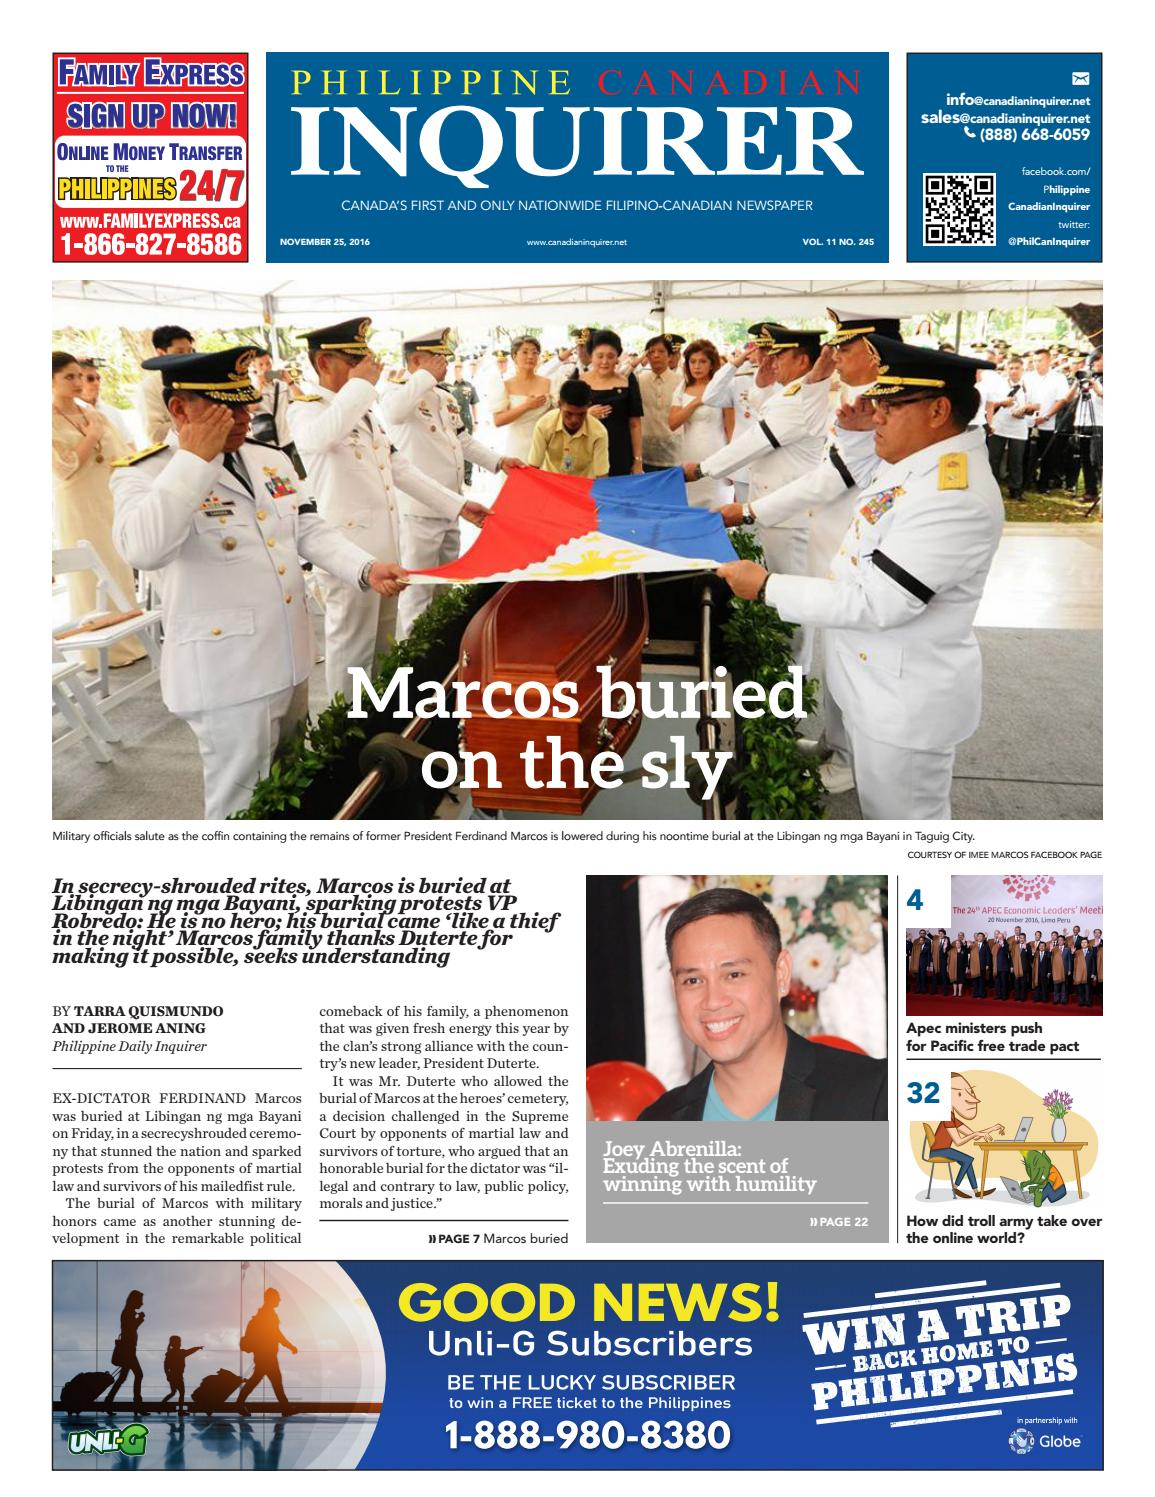 Philippine Canadian Inquirer #245 by Philippine Canadian Inquirer - issuu